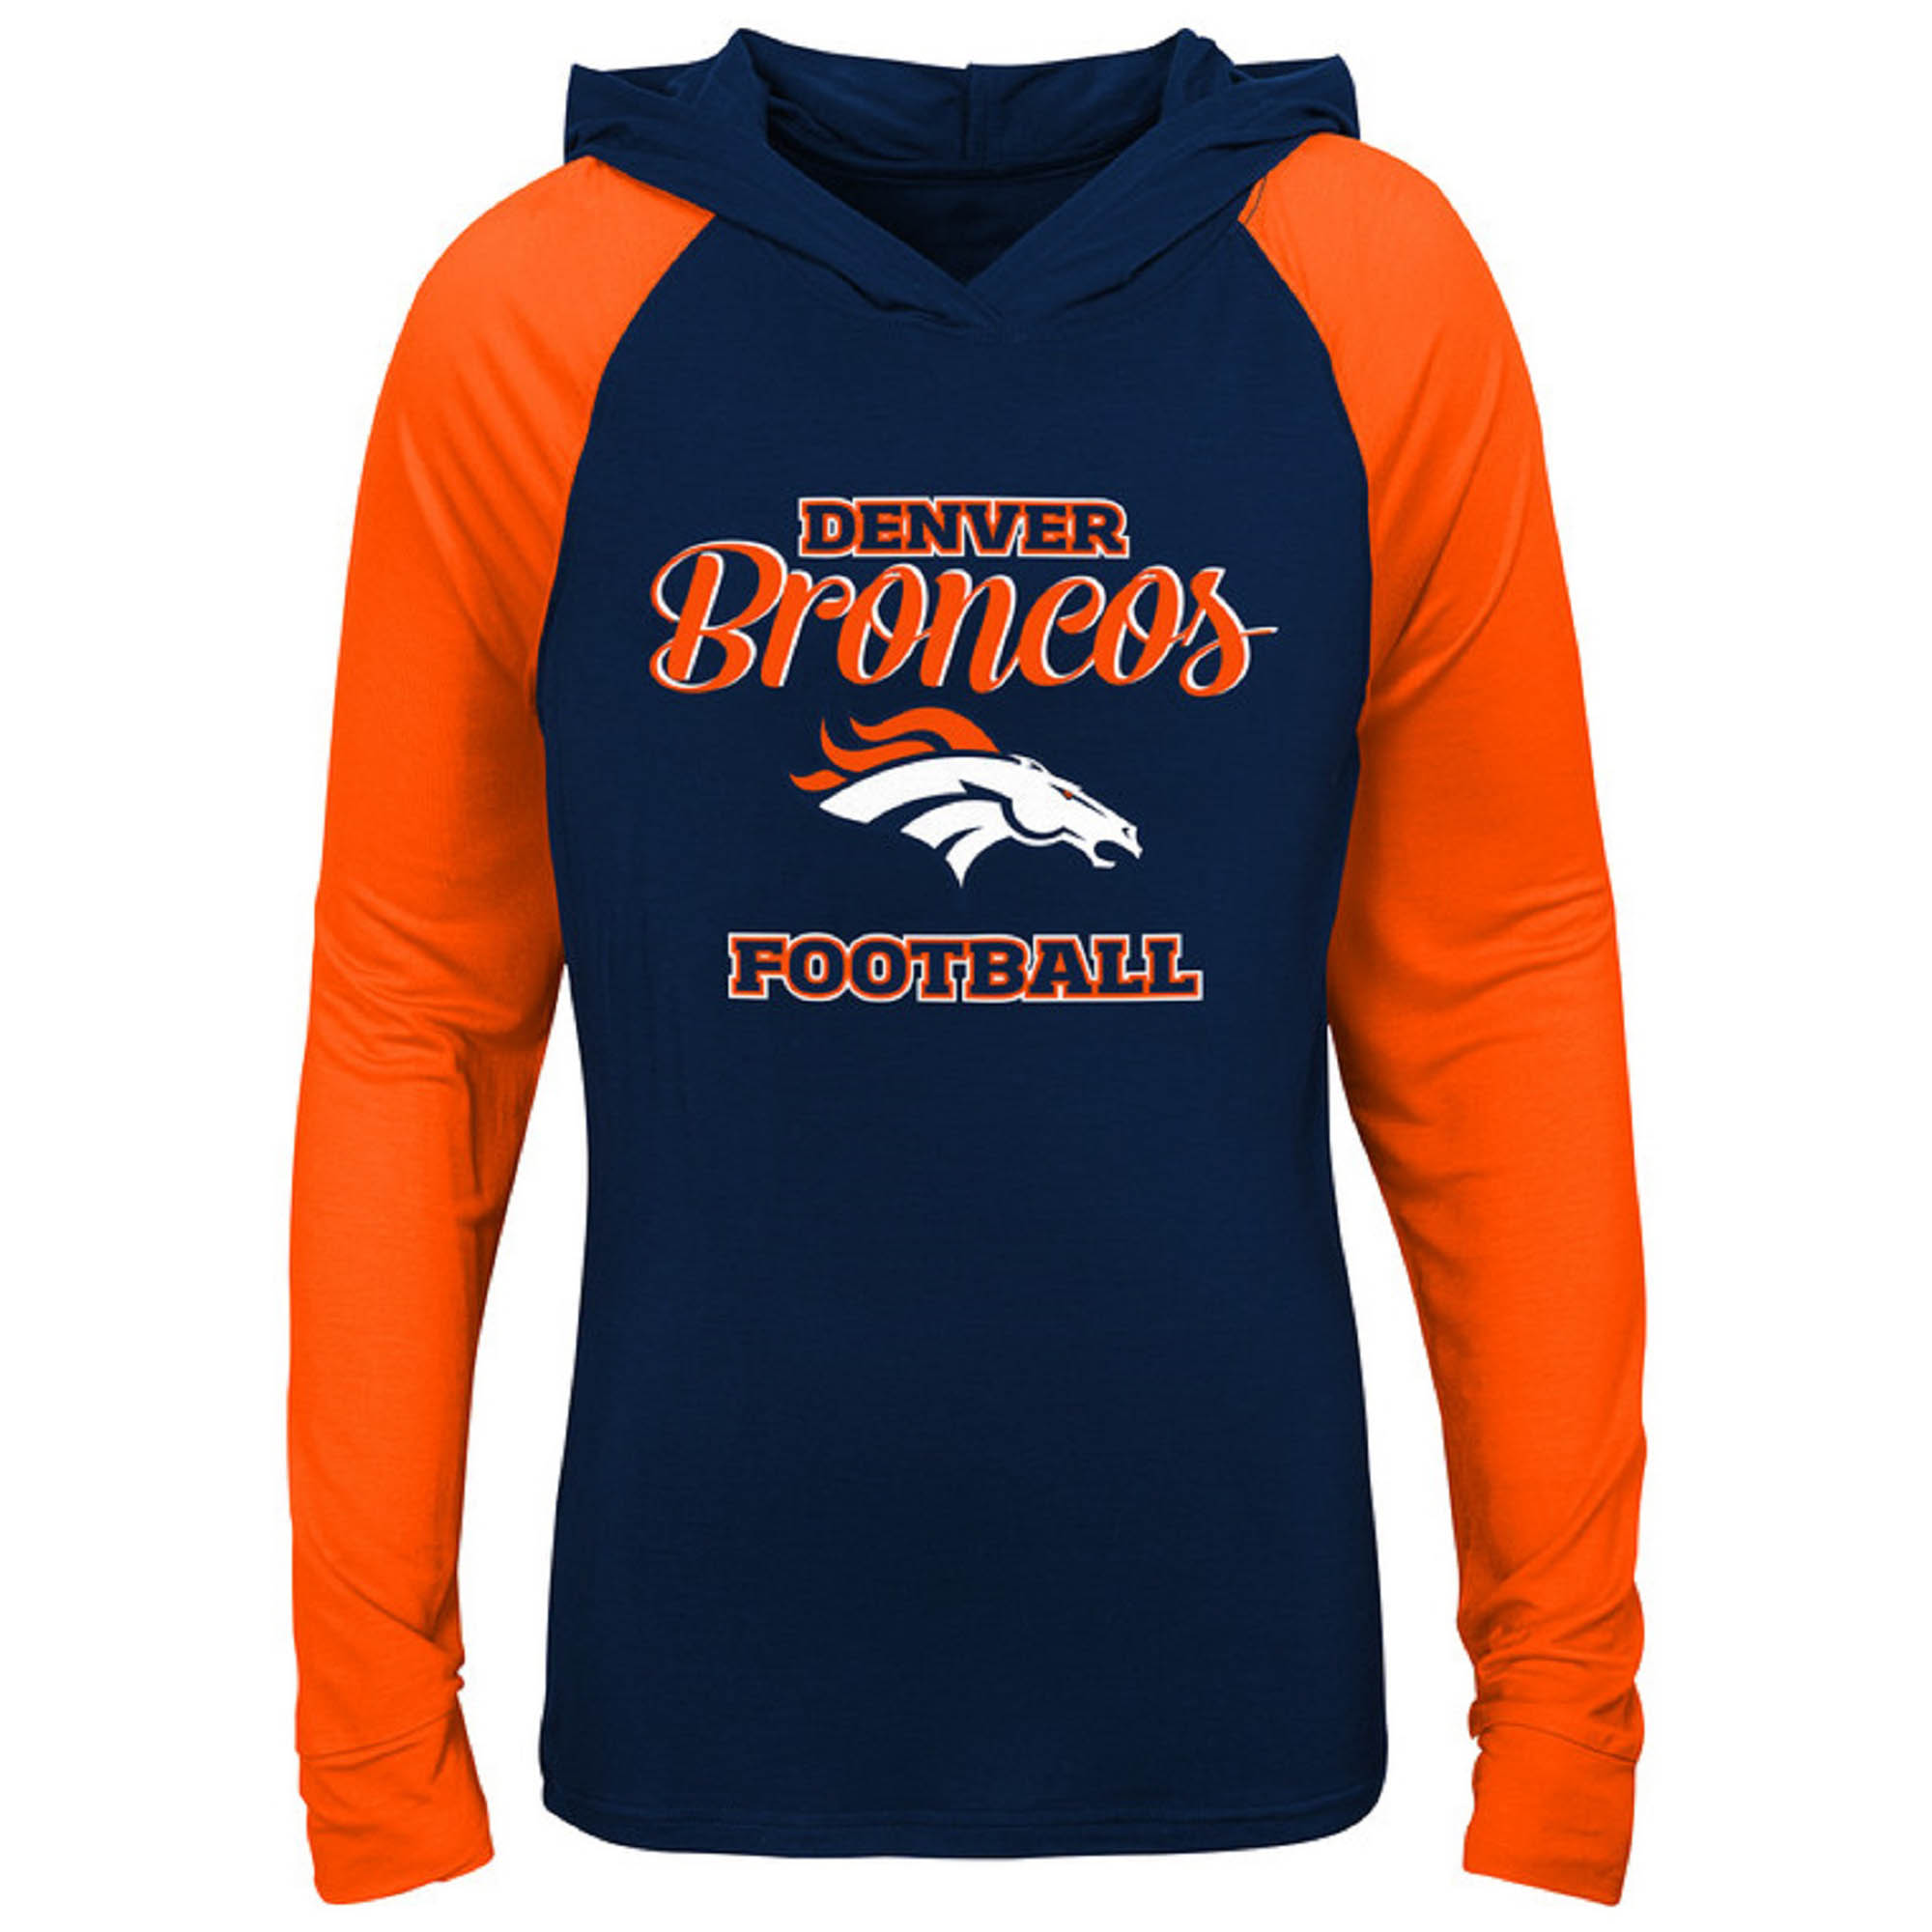 Girls Youth Navy/Orange Denver Broncos Hooded Long Sleeve T-Shirt